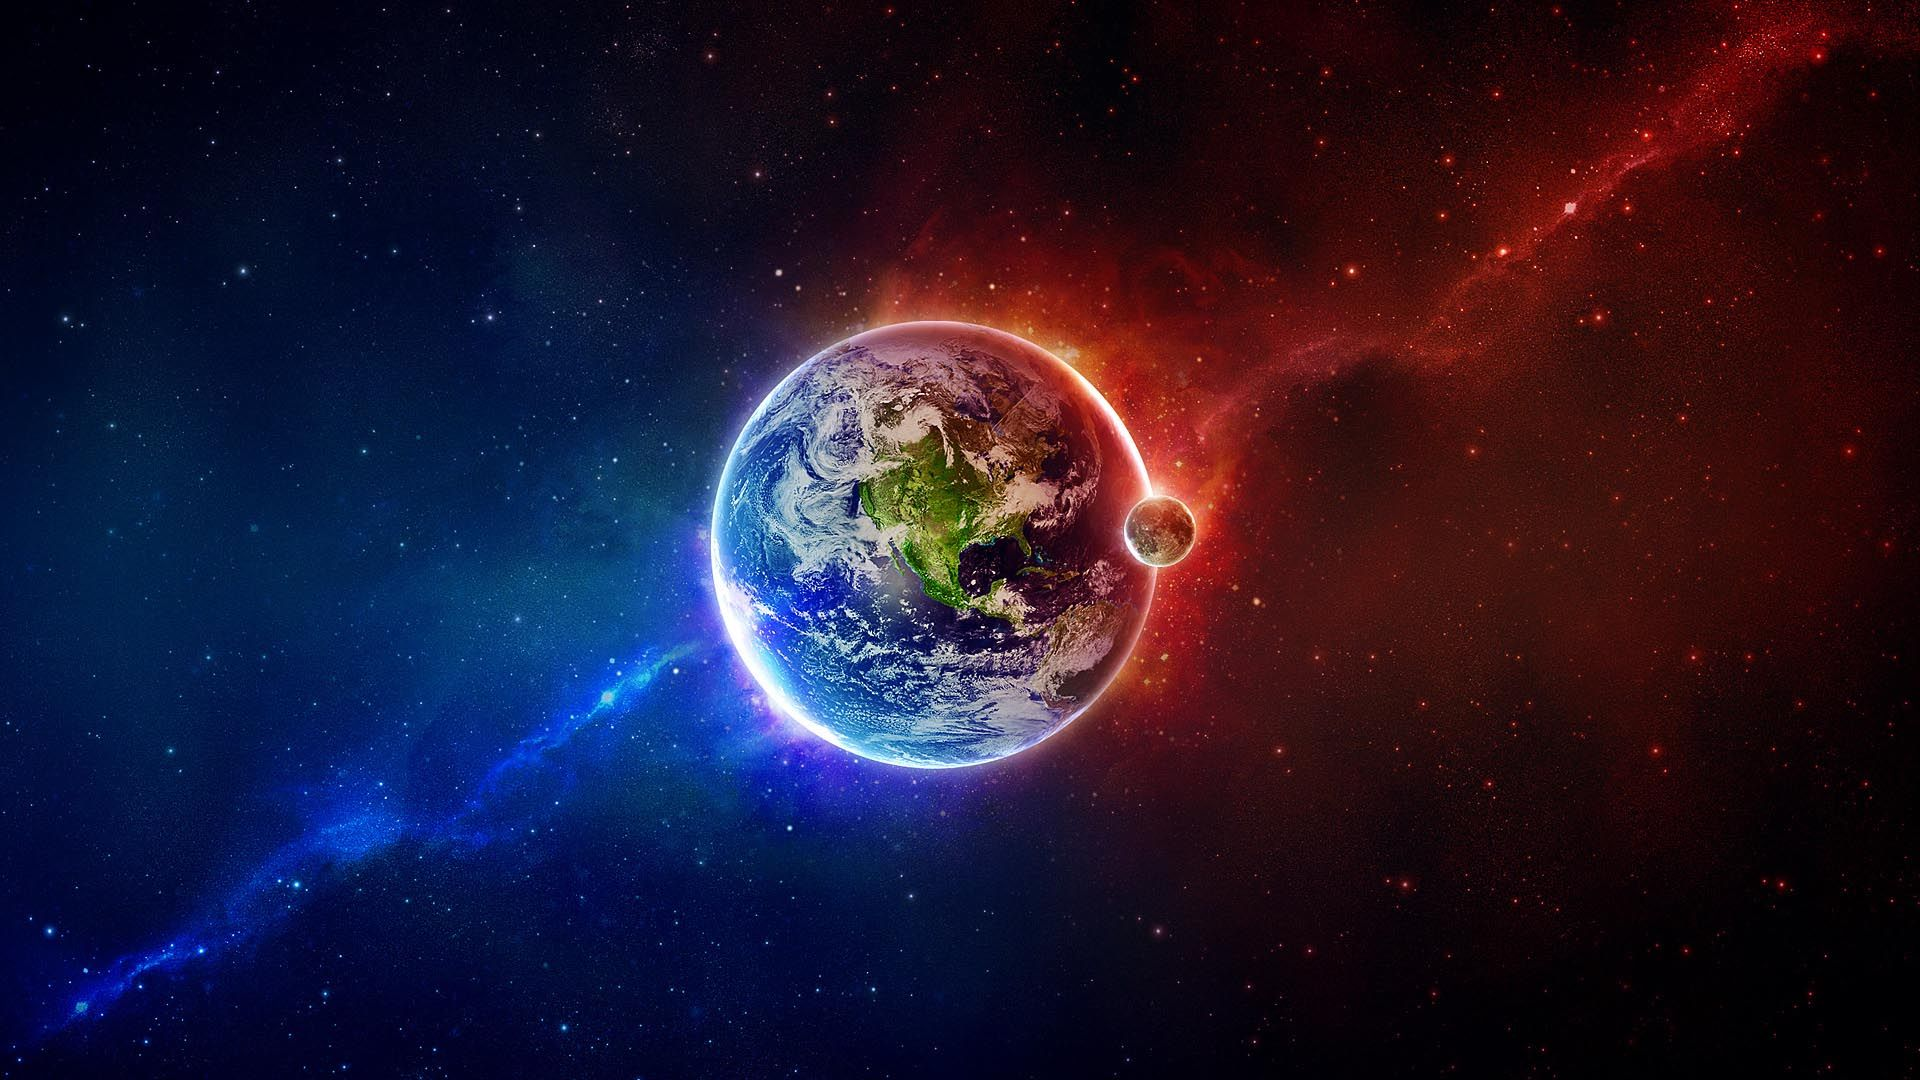 Outer Space Earth Moon Red Blue Hd Wallpaper With Images Earth